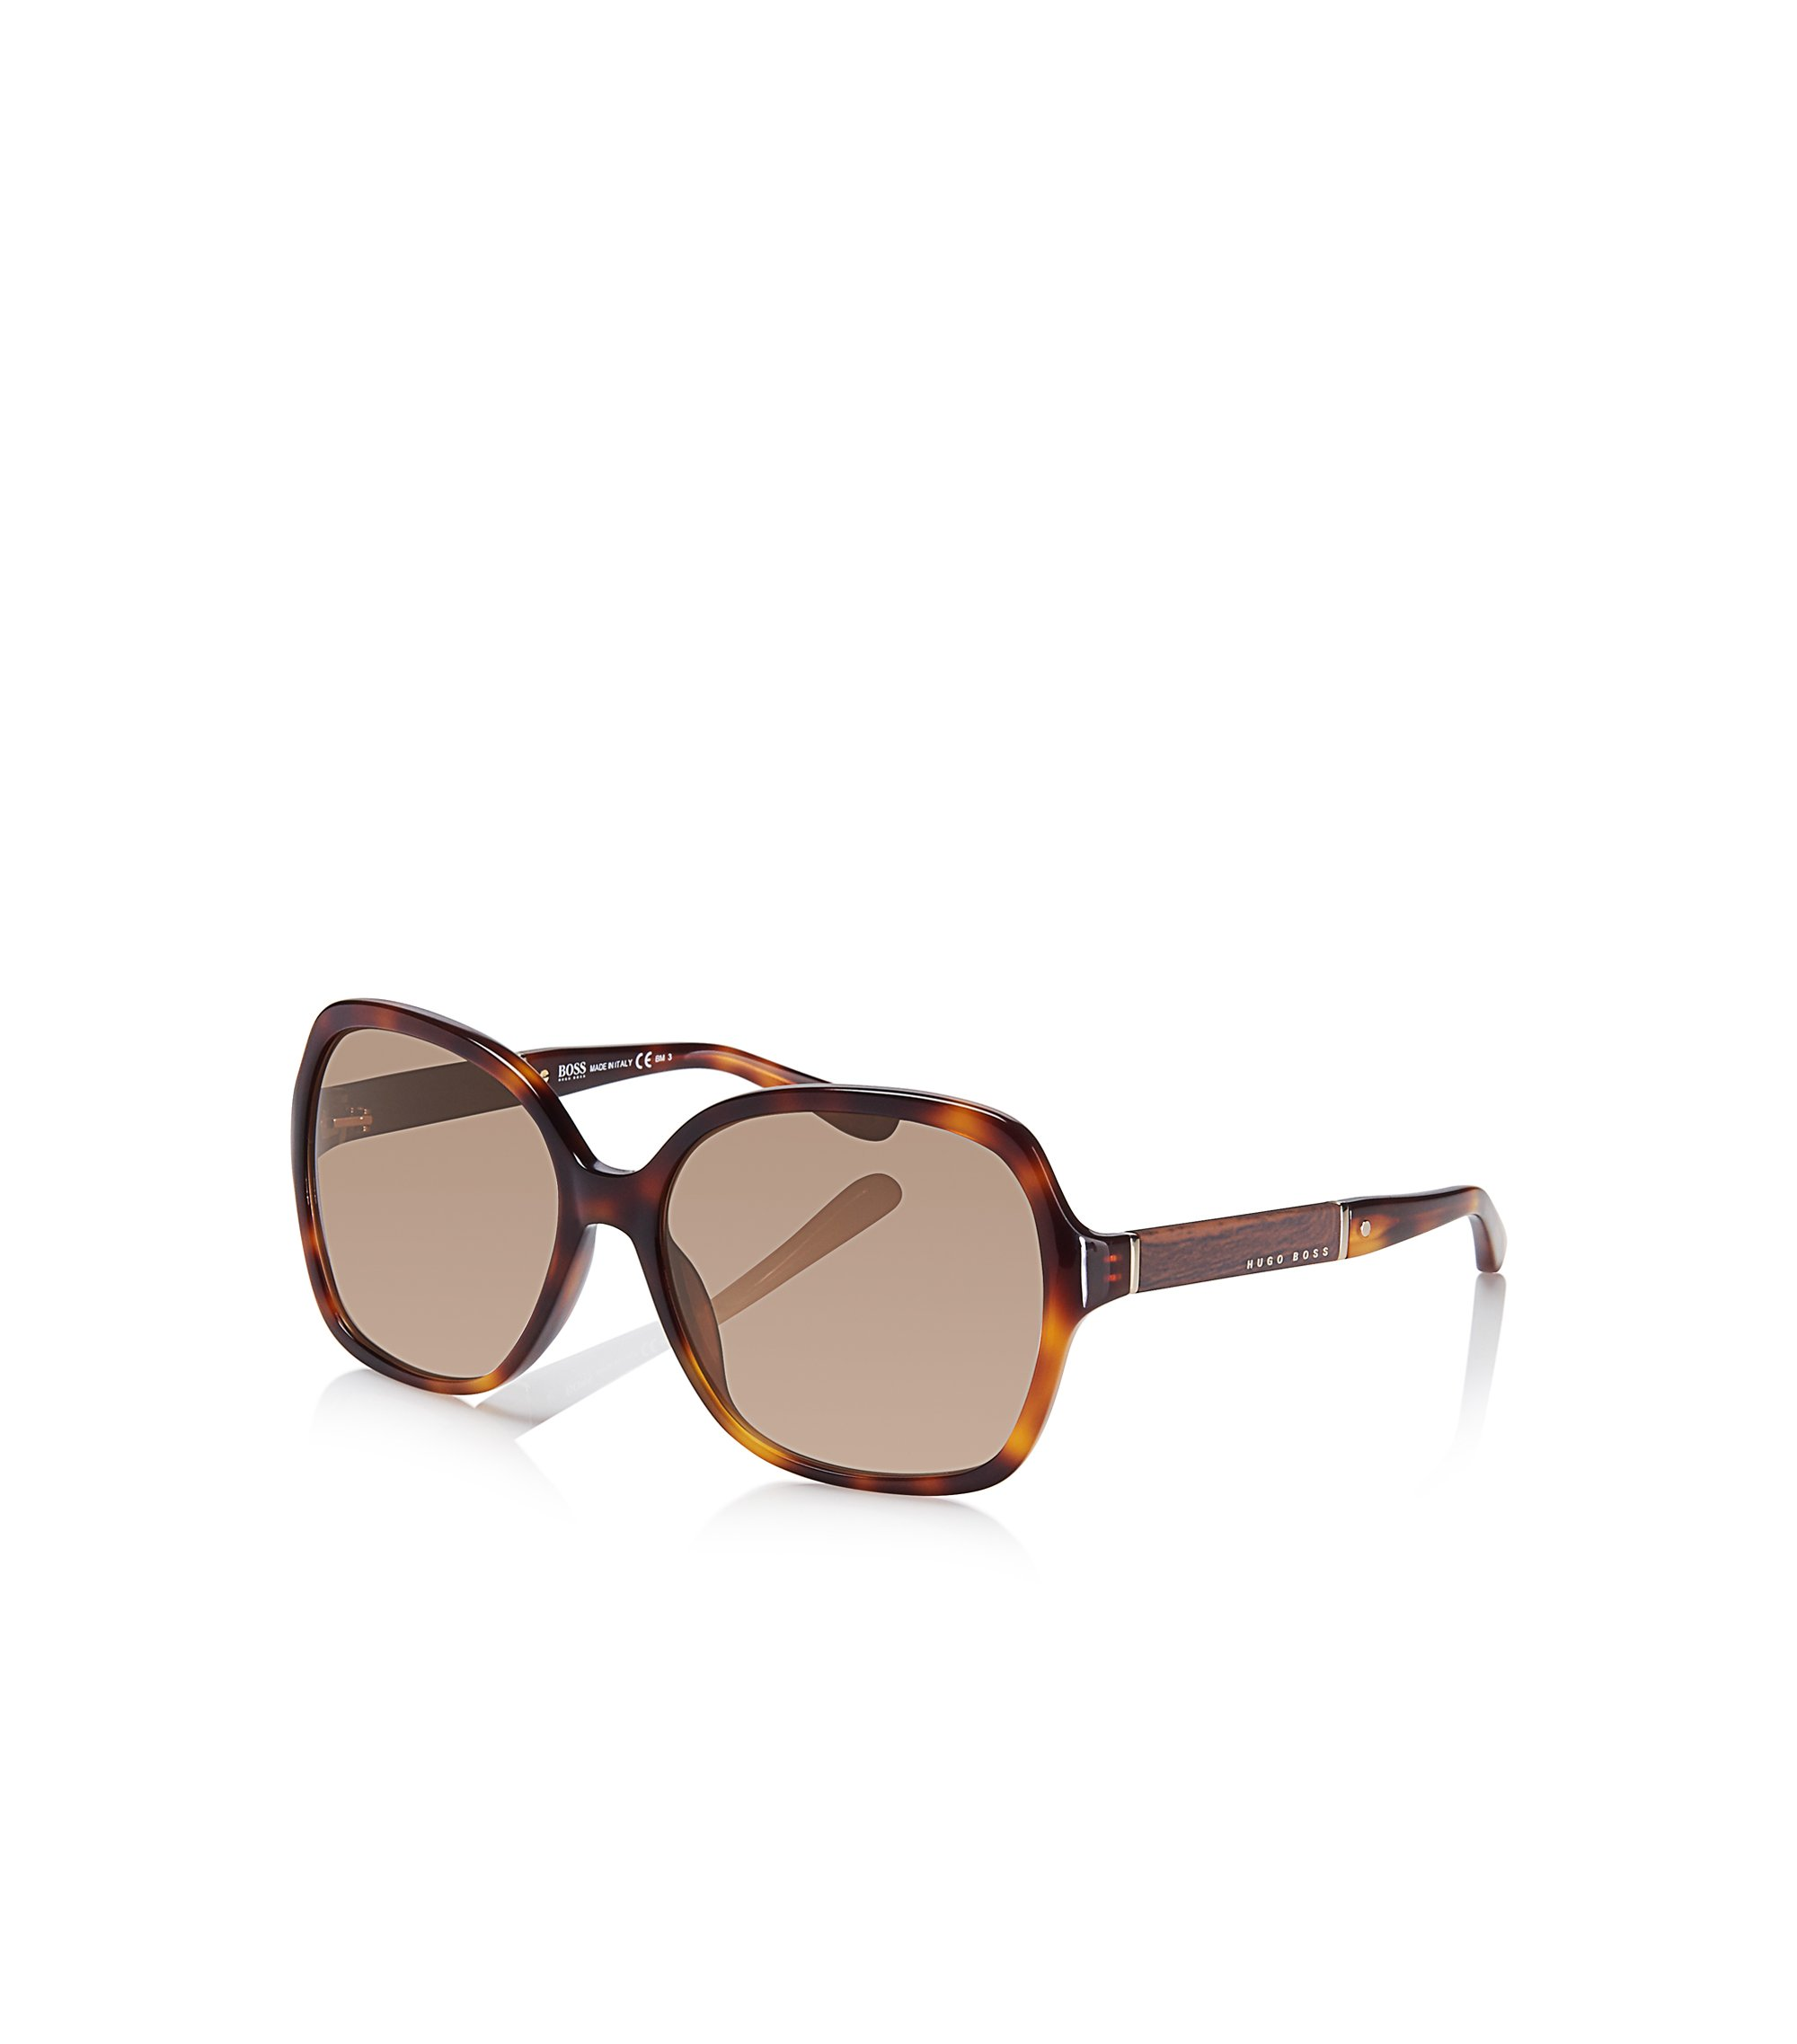 Square Tortoiseshell Pattern Sunglasses | BOSS 0664/S, Assorted-Pre-Pack